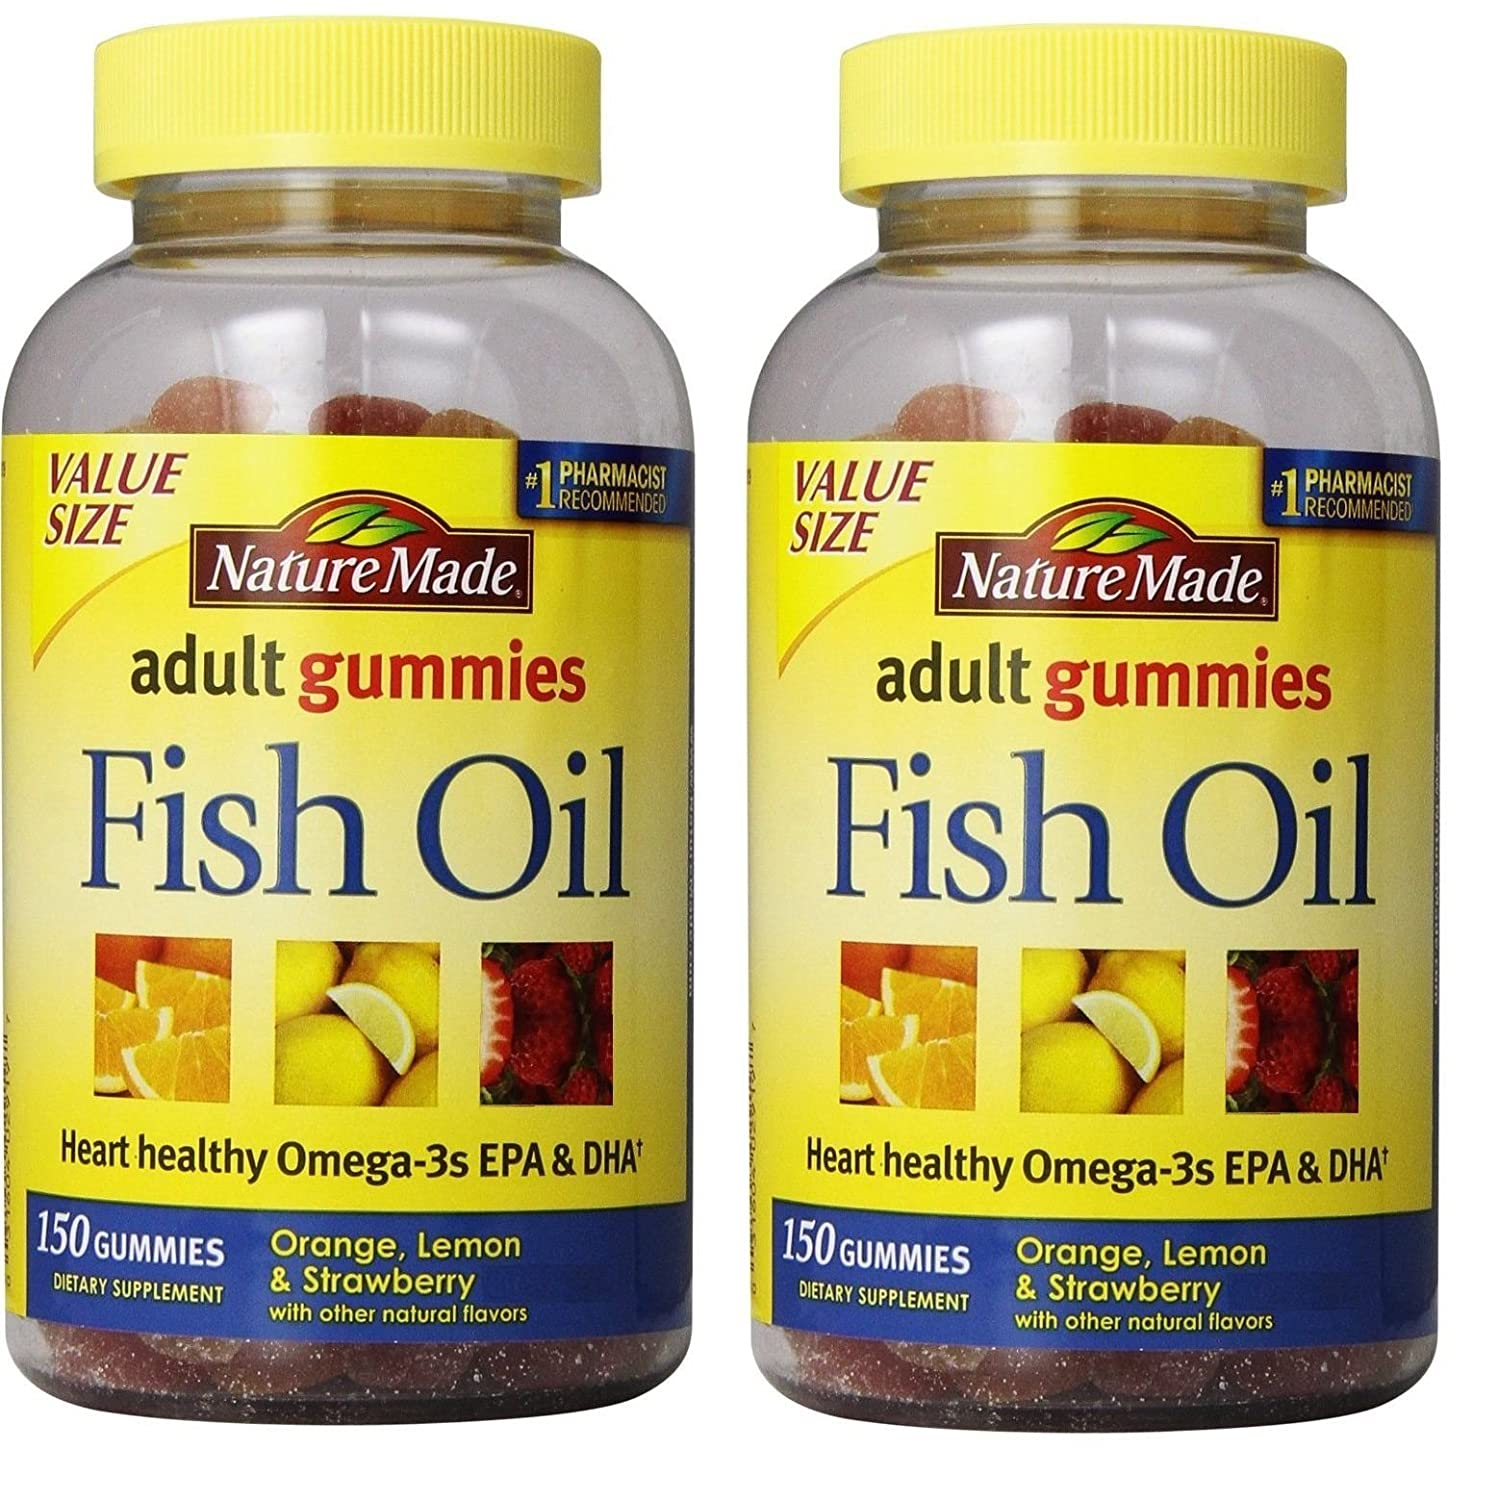 Nature Made Fish Oil Adult Gummies Nutritional Supplements, Value Size, 150 Count (Pack of 2) Packaging may vary